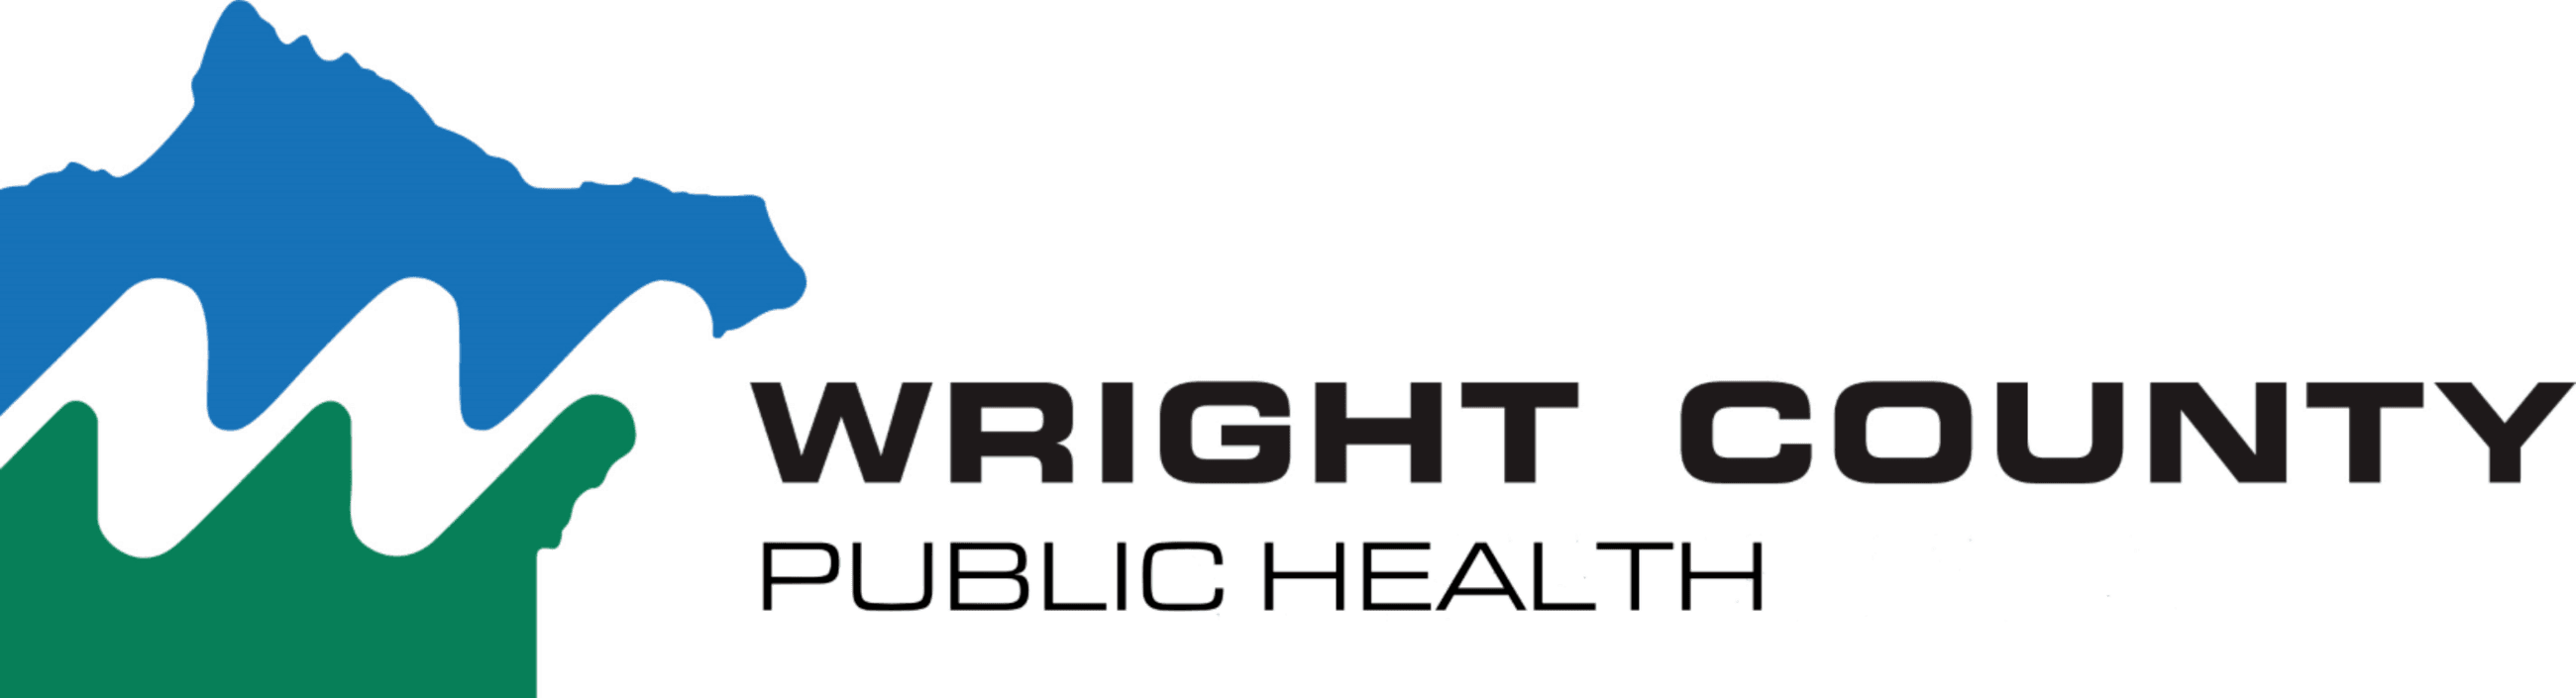 Wright County Public Health Logo